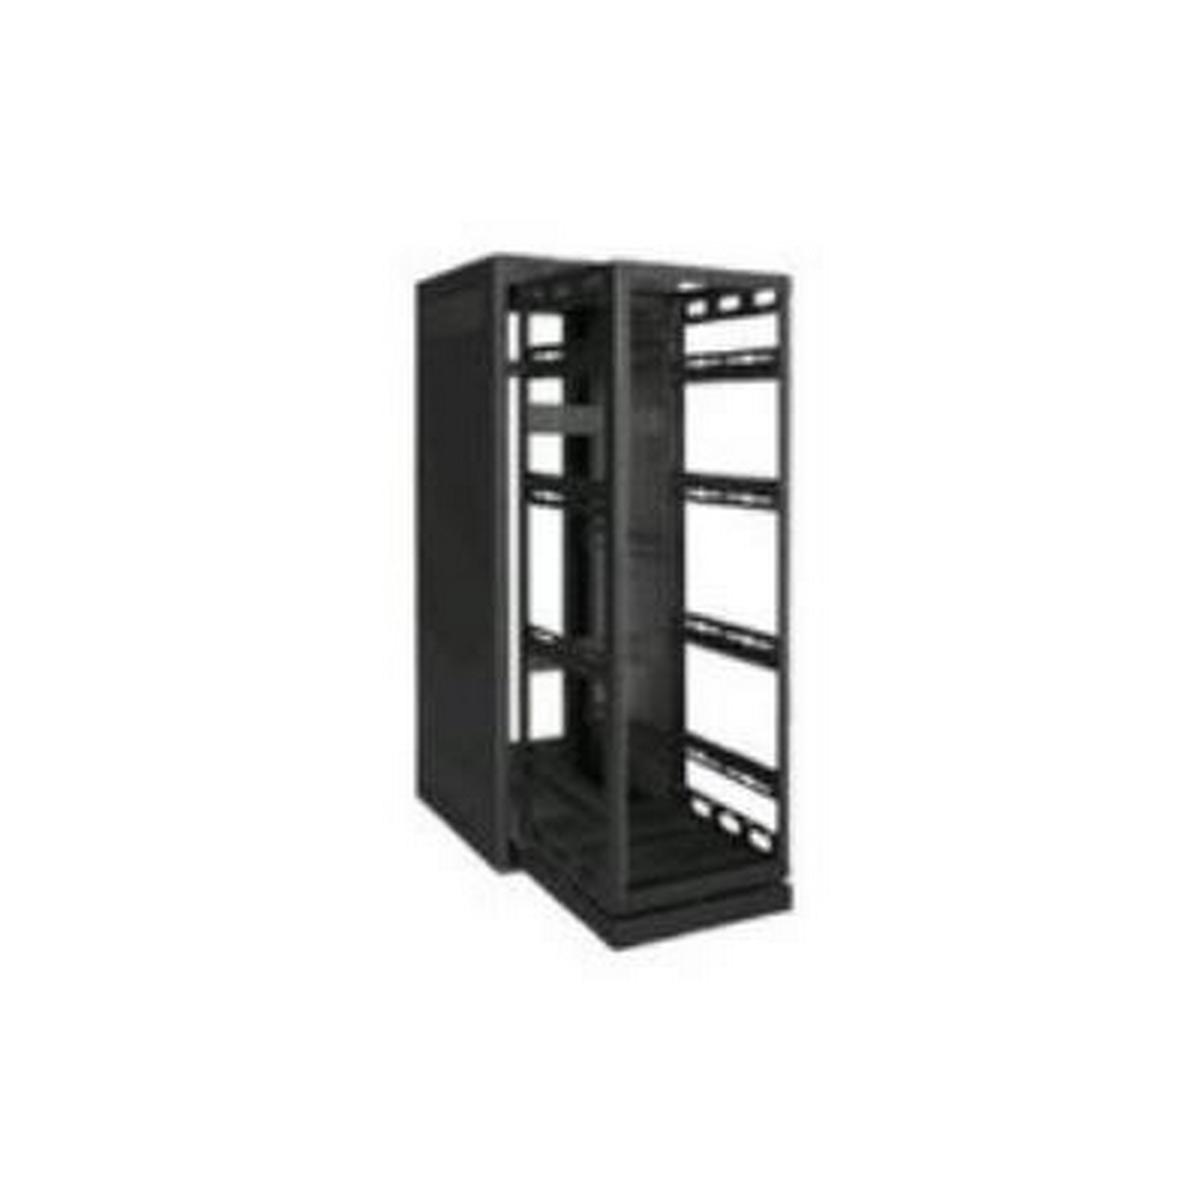 Rack-Rollout/Rotating System-35U, 42in Deep, Black